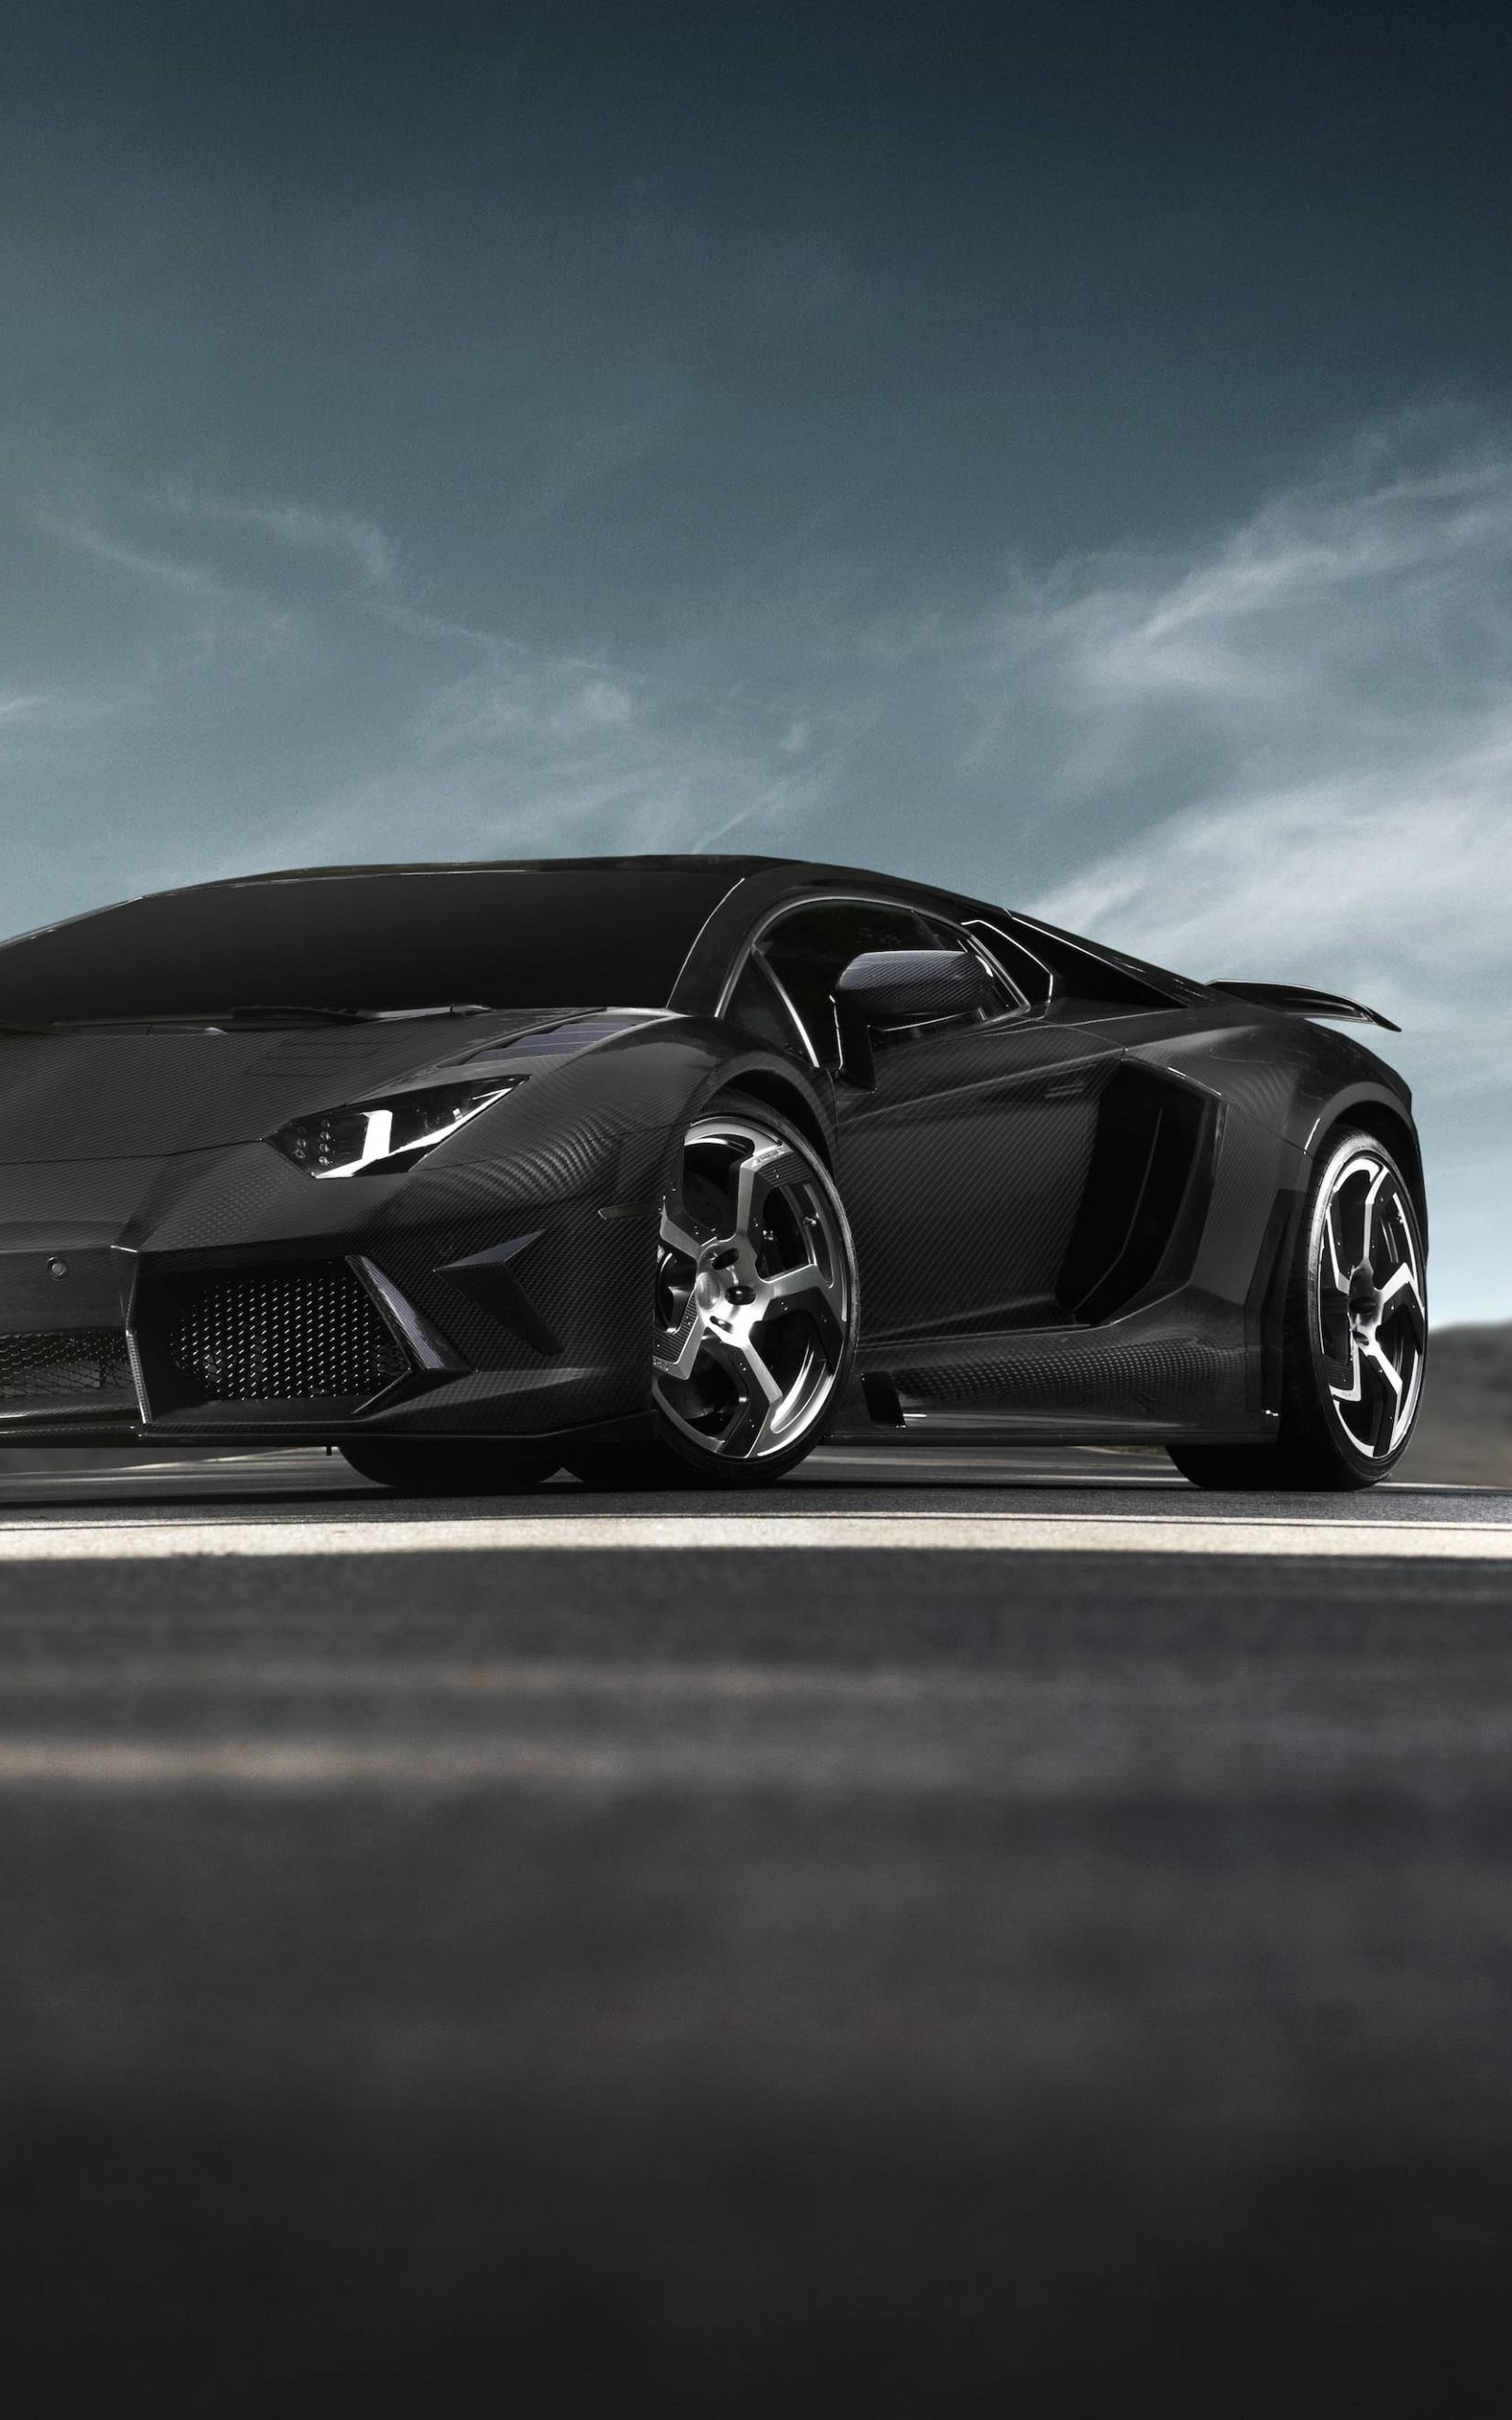 Mansory Carbonado Lamborghini Aventador LP700-4 Wallpaper for Amazon Kindle Fire HDX 8.9